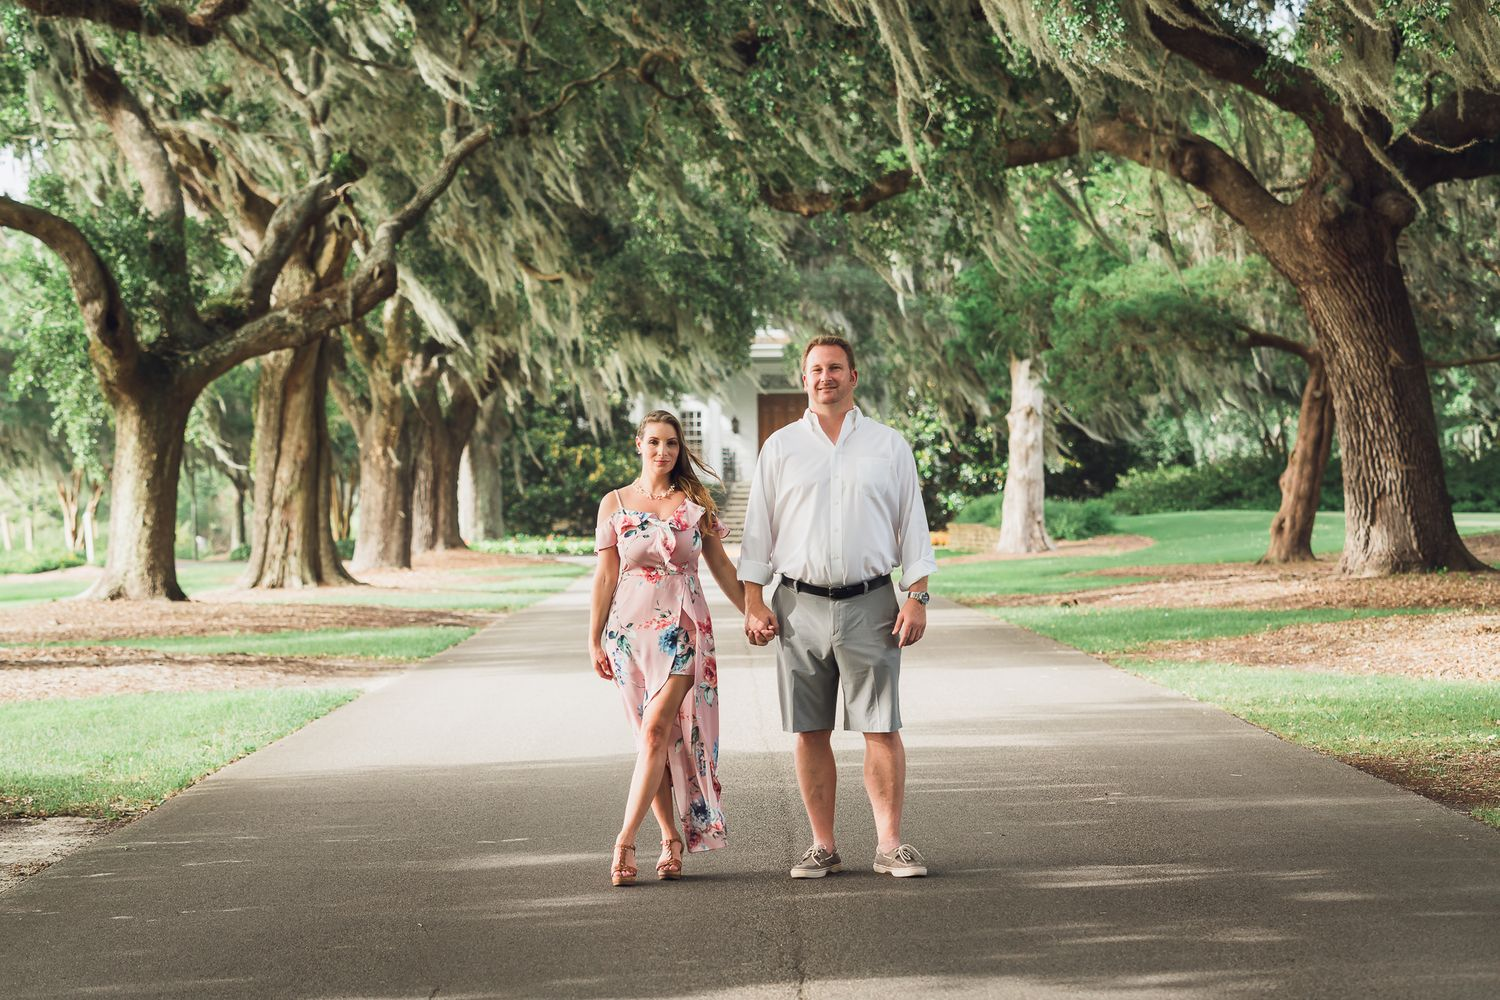 Future bride & groom holding hands during their engagement photoshoot at Caledonia Gold & Fish Club, Pawleys Island, SC